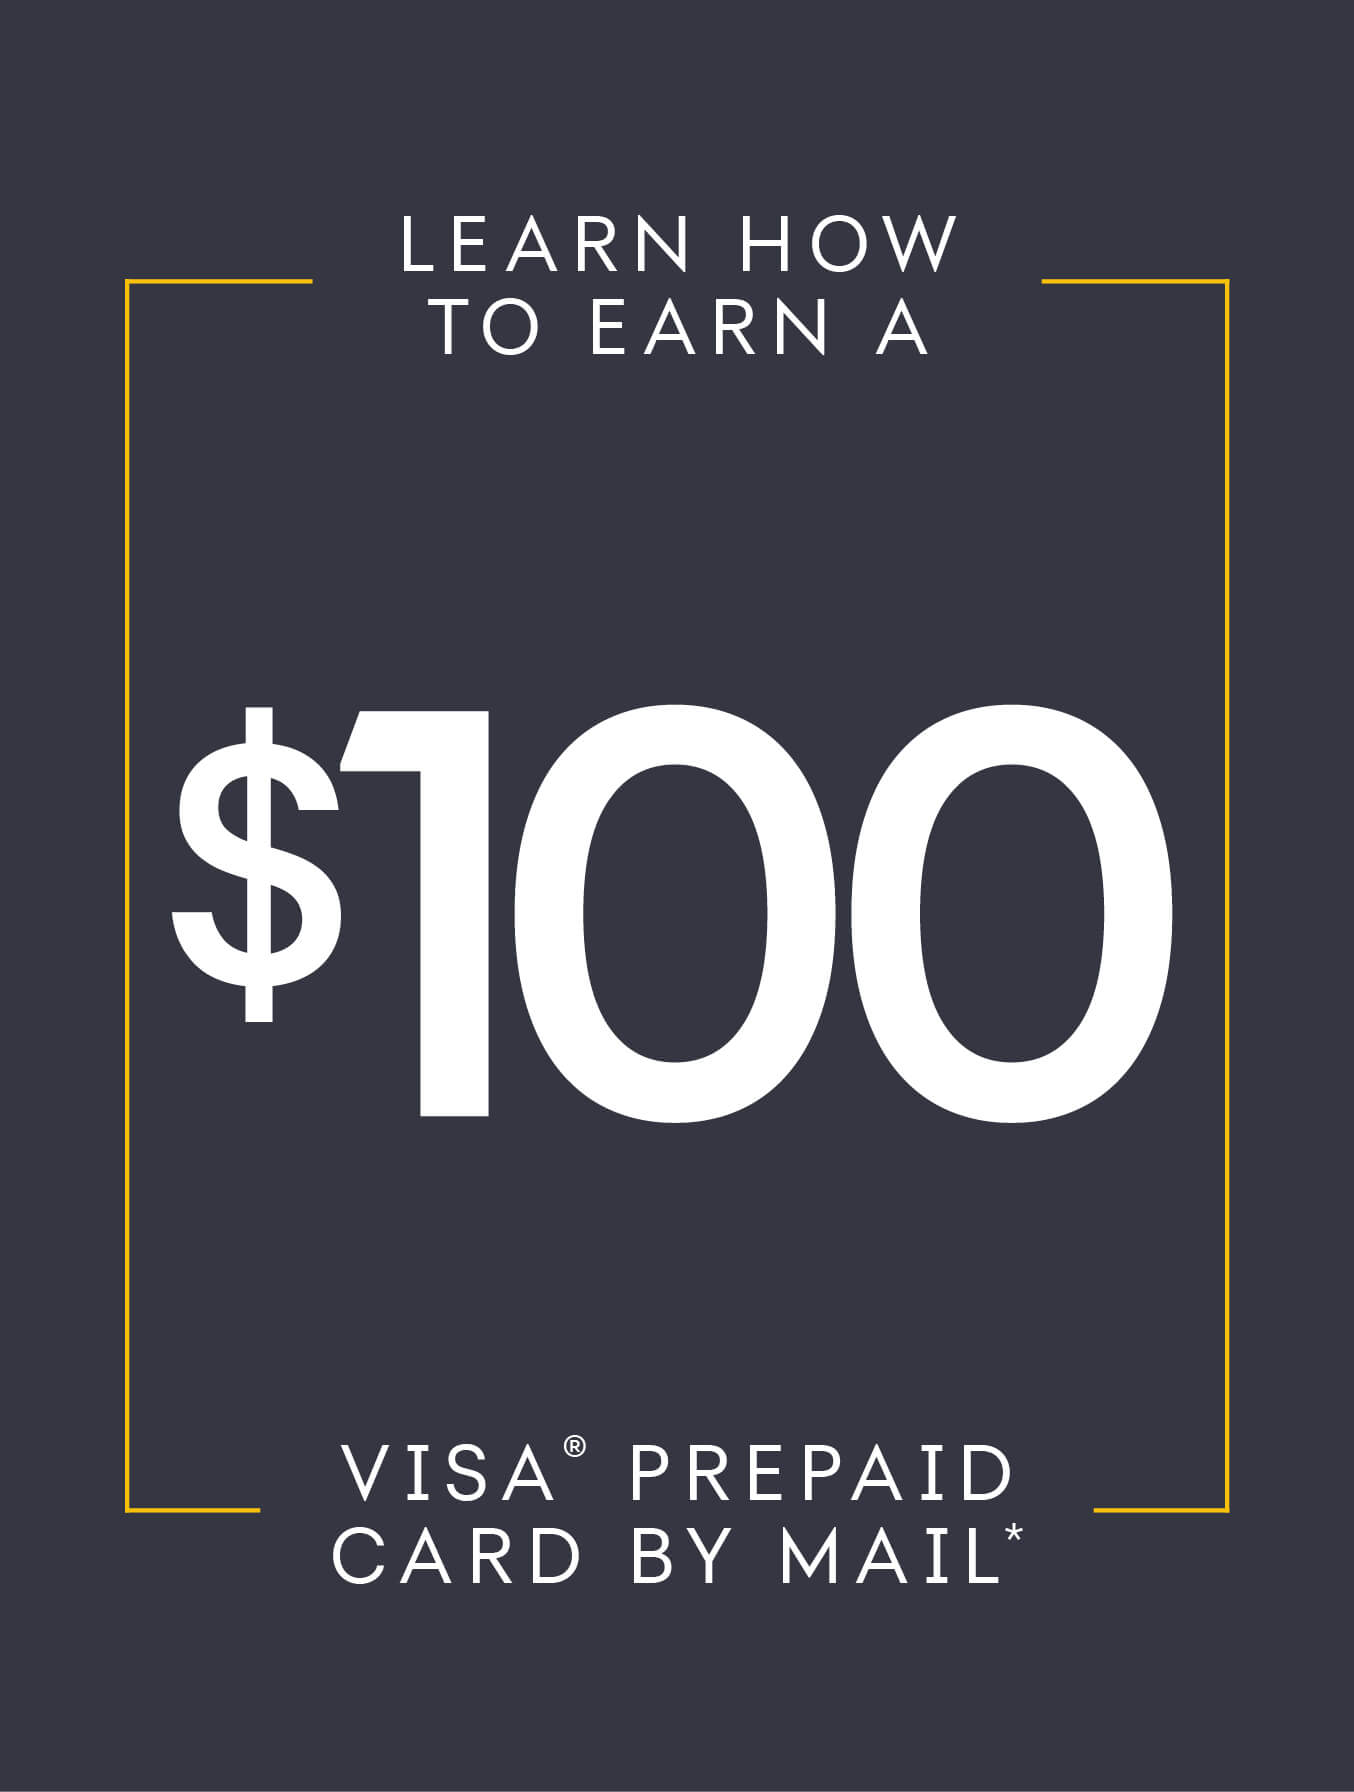 Get what you really want today with an easy way to pay!